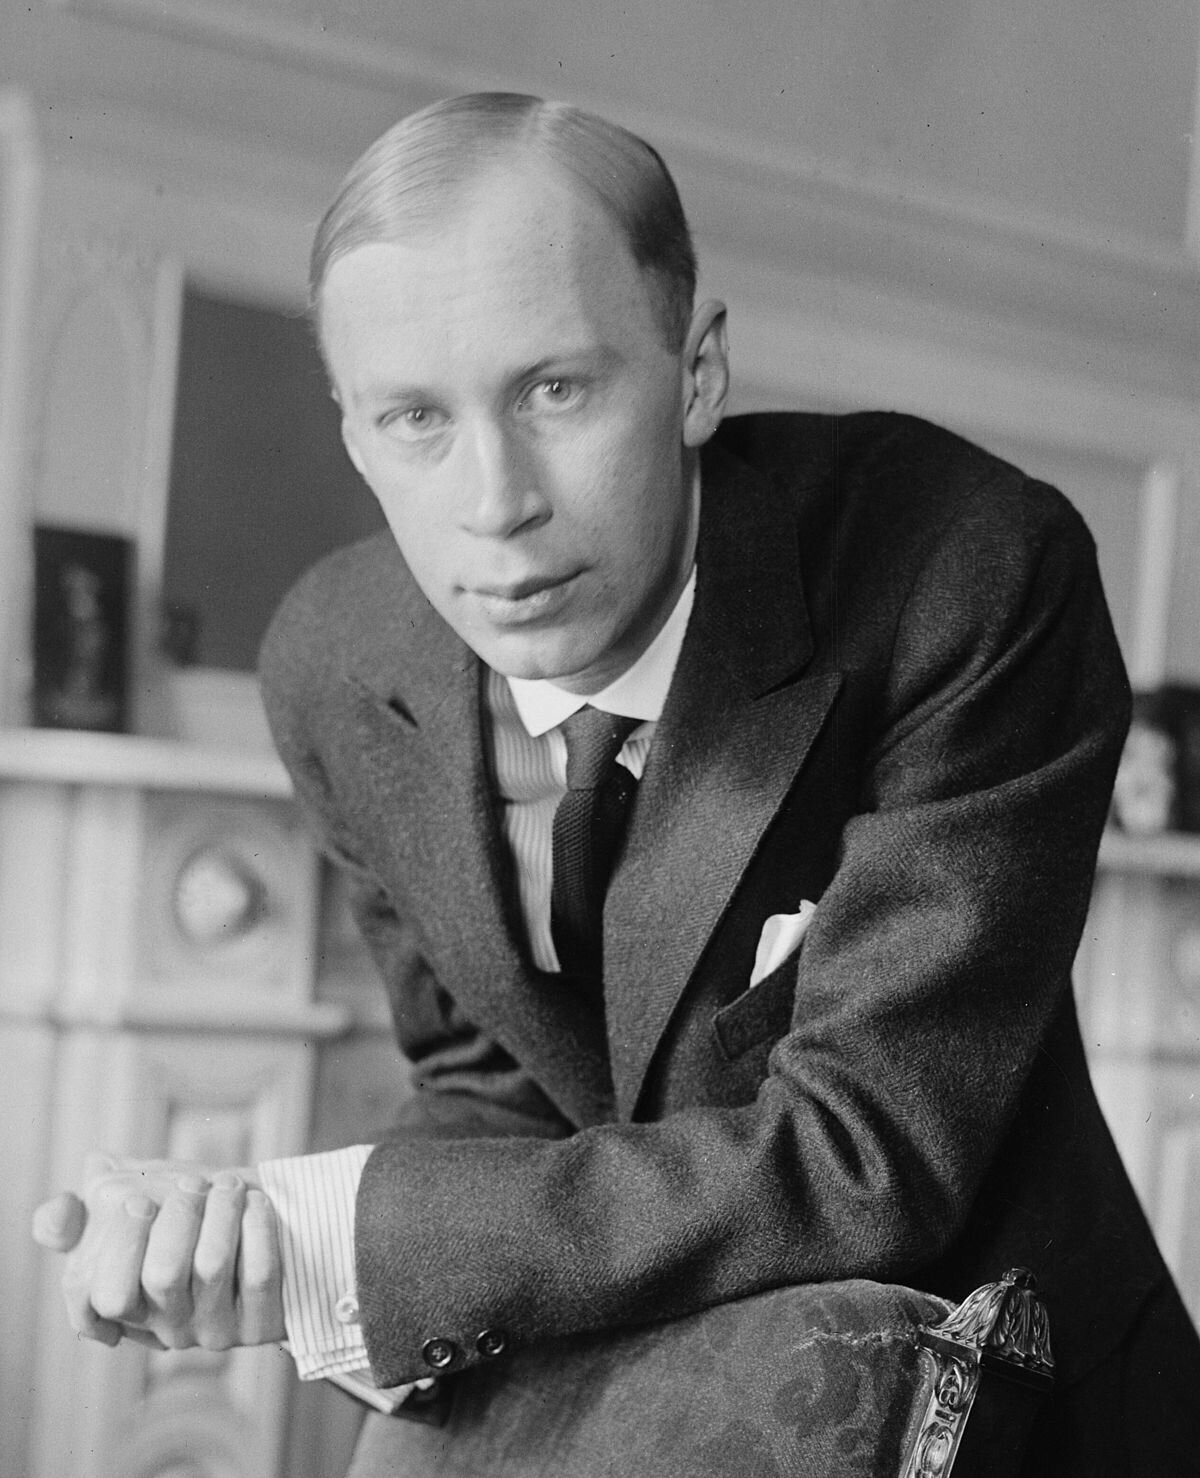 10 Things You May Not Know About Sergei Prokofiev